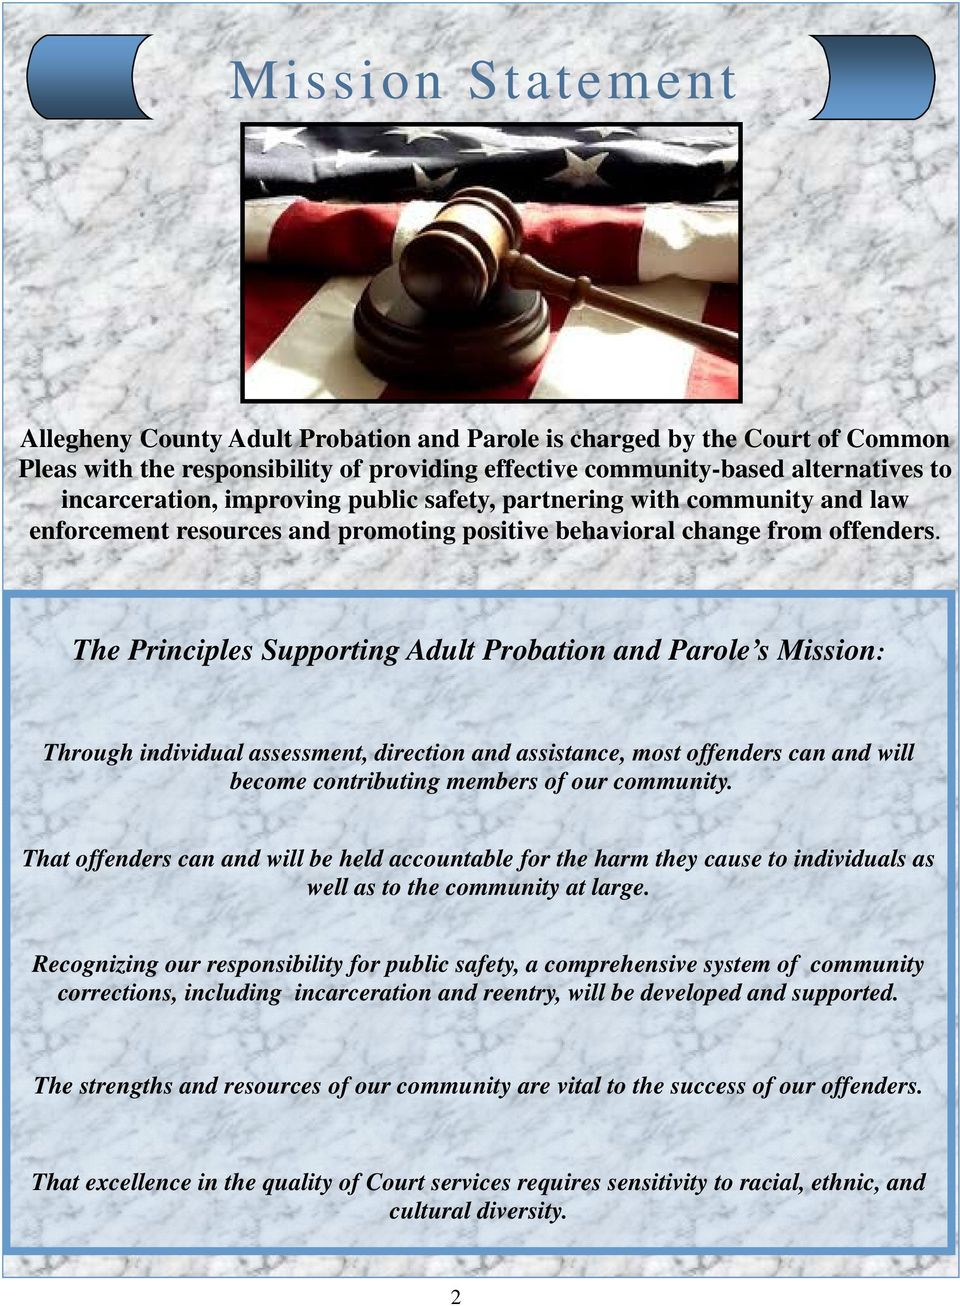 The Principles Supporting Adult Probation and Parole s Mission: Through individual assessment, direction and assistance, most offenders can and will become contributing members of our community.